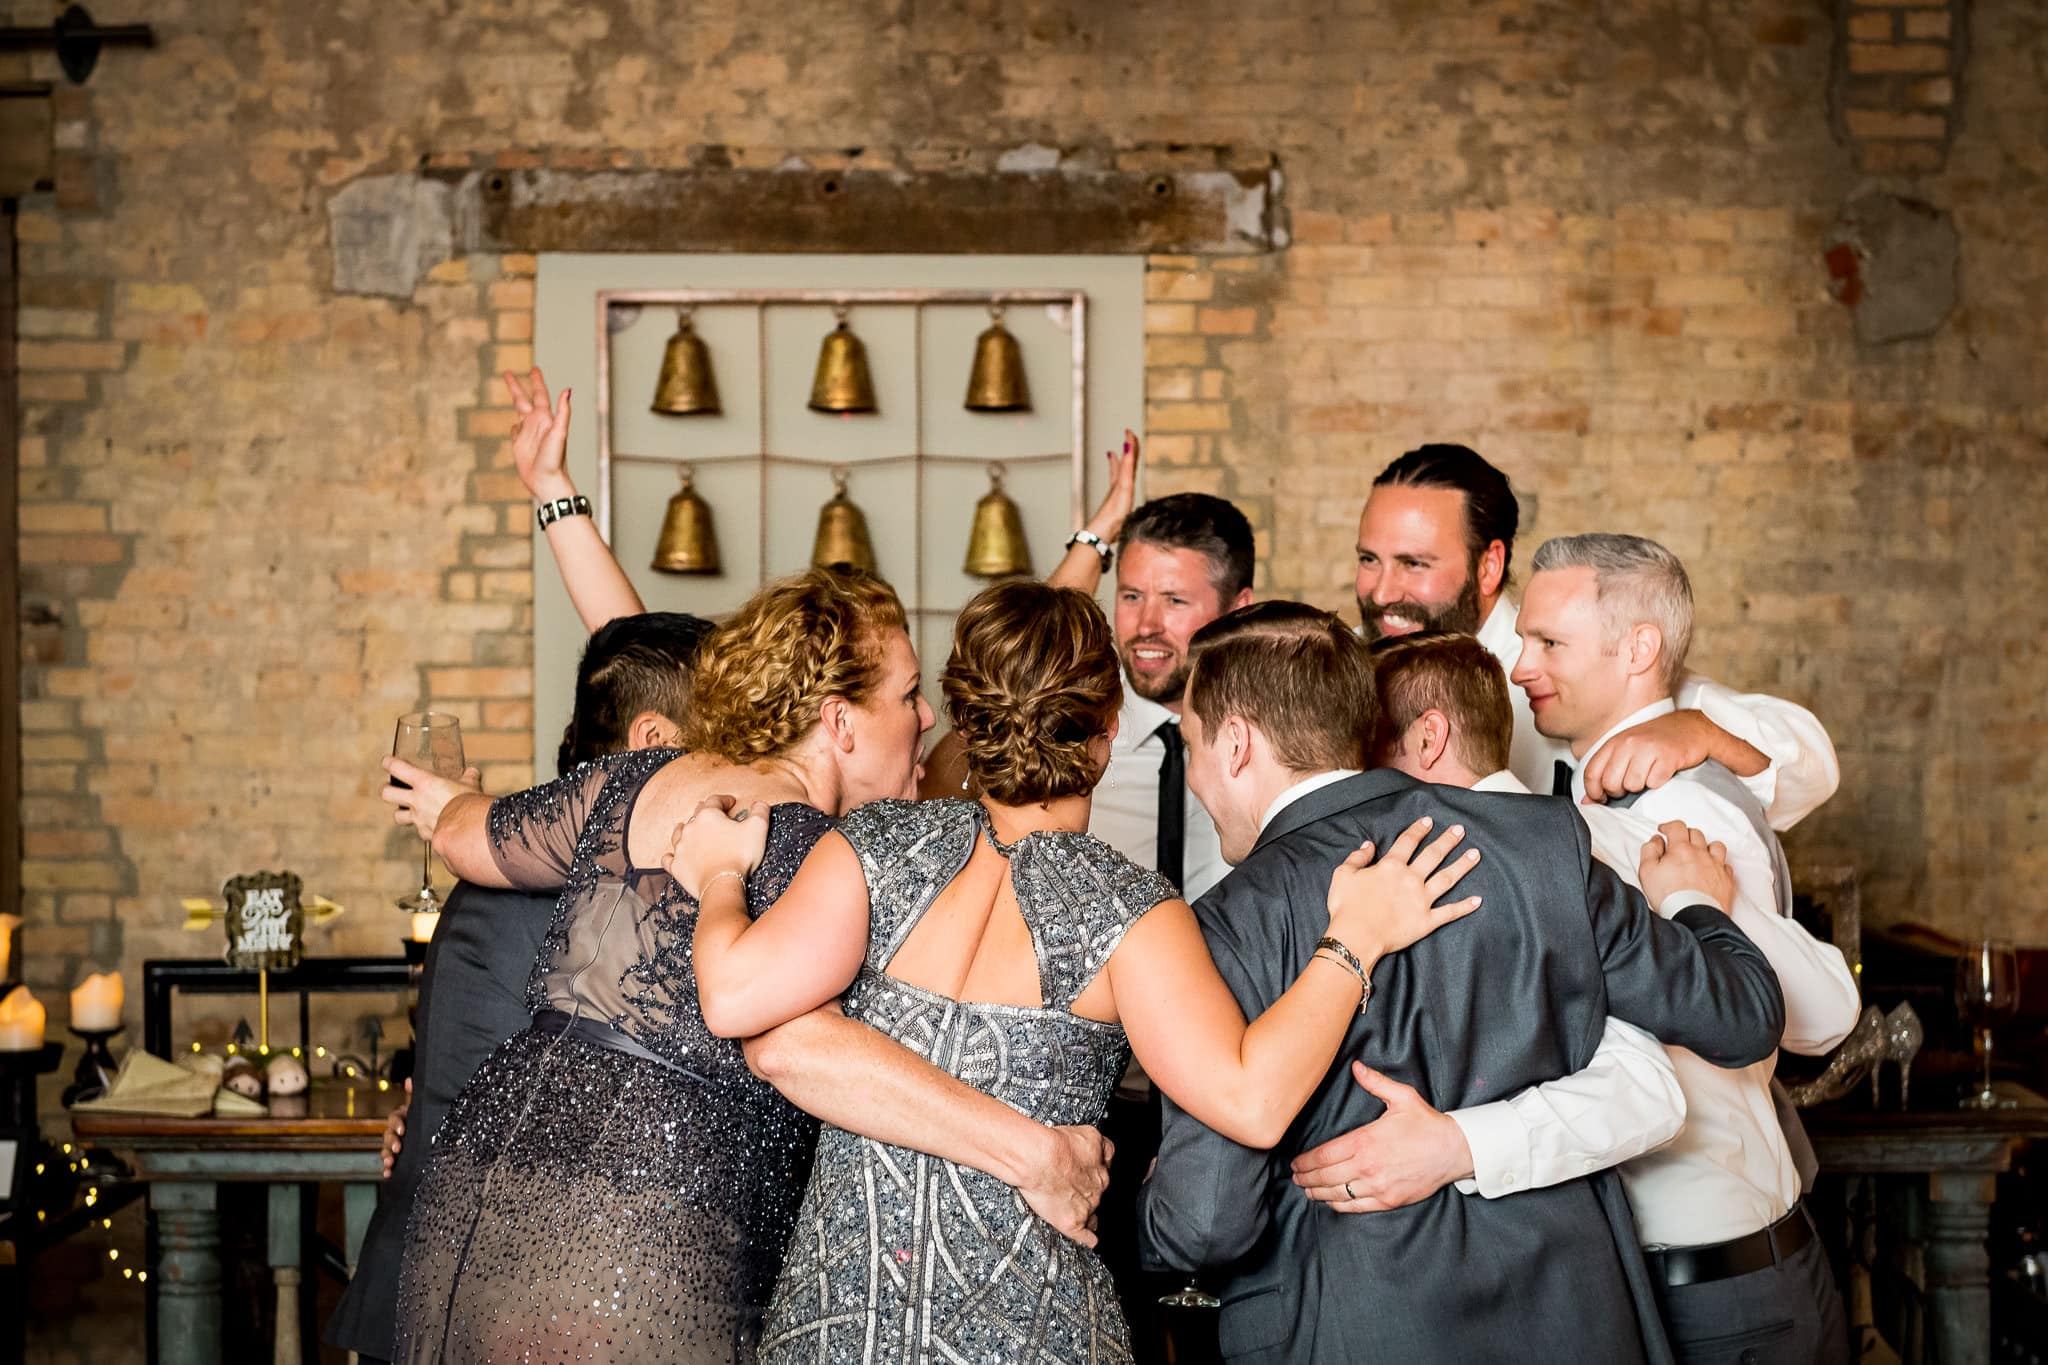 Wedding party sharing a fun moment on the dance floor in the River Room at Aster Cafe during the wedding reception 2